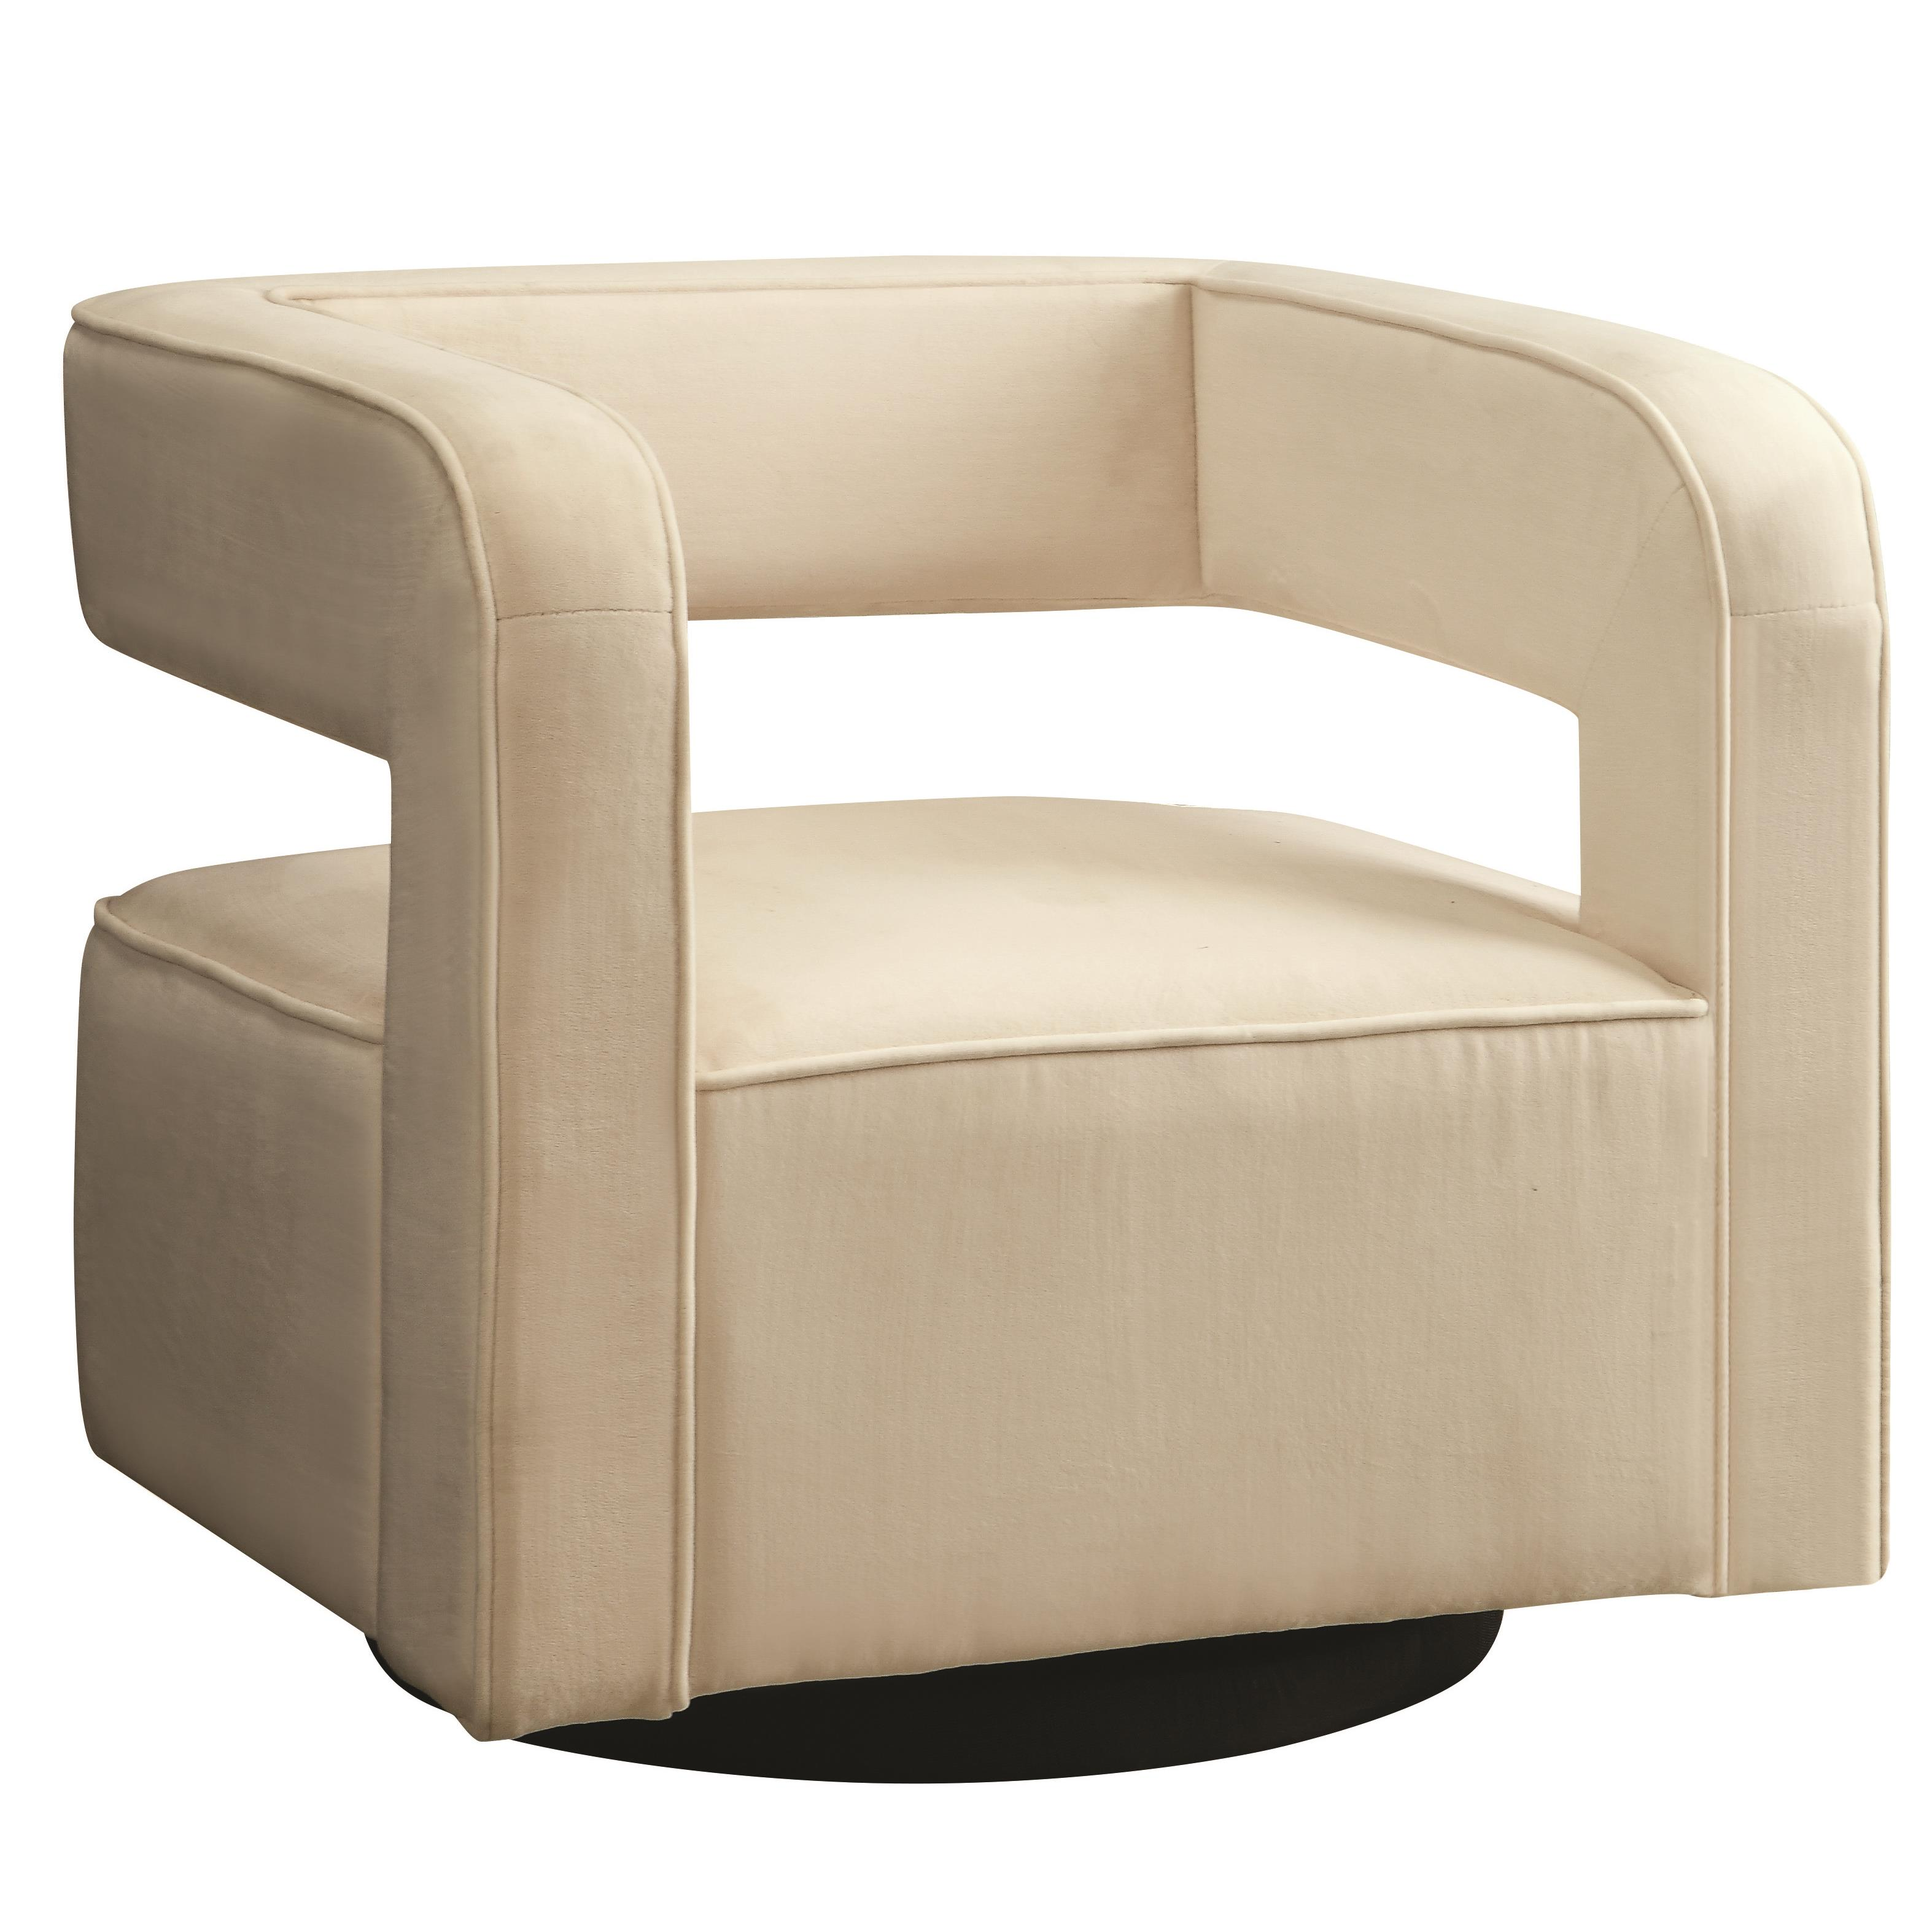 Coaster Accent Seating Accent Chair - Item Number: 902427